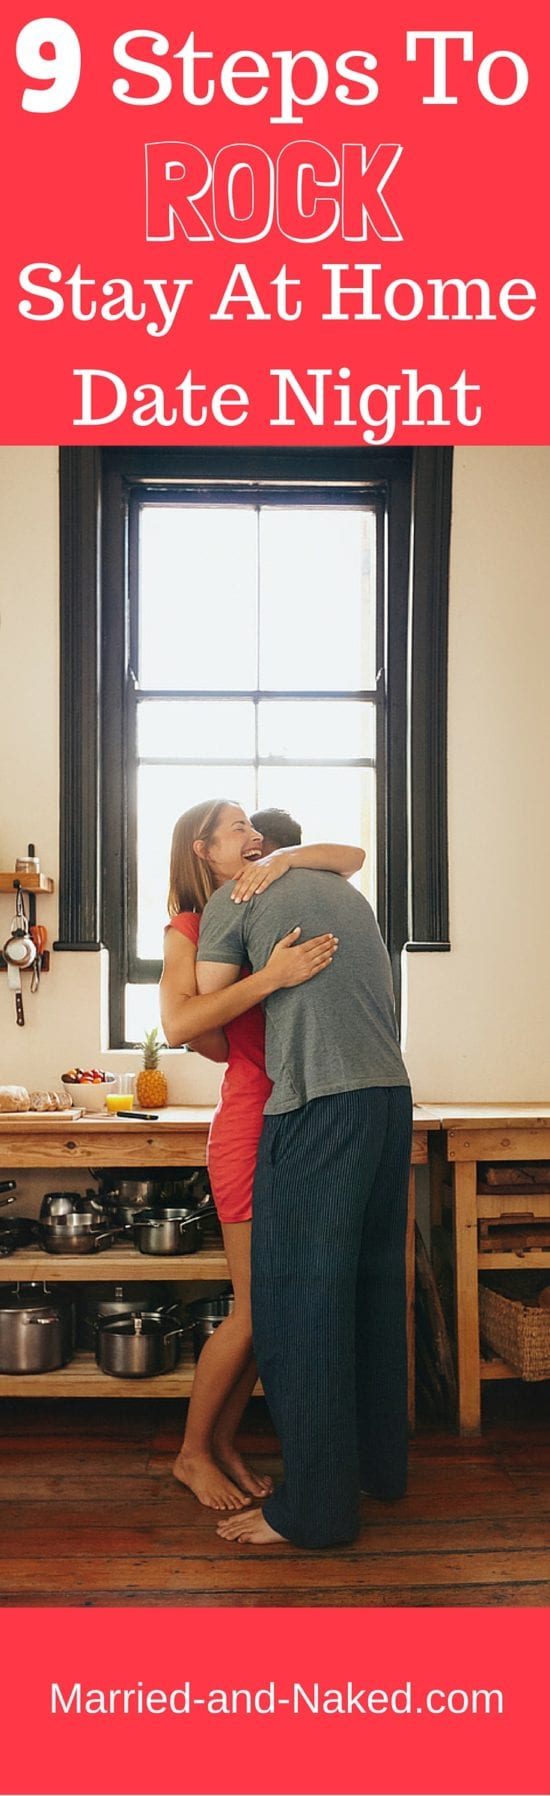 Can't find the time to get out of the house on date night. No worries. Here are 9 Steps To Rock Stay At Home Date Night. #marriage